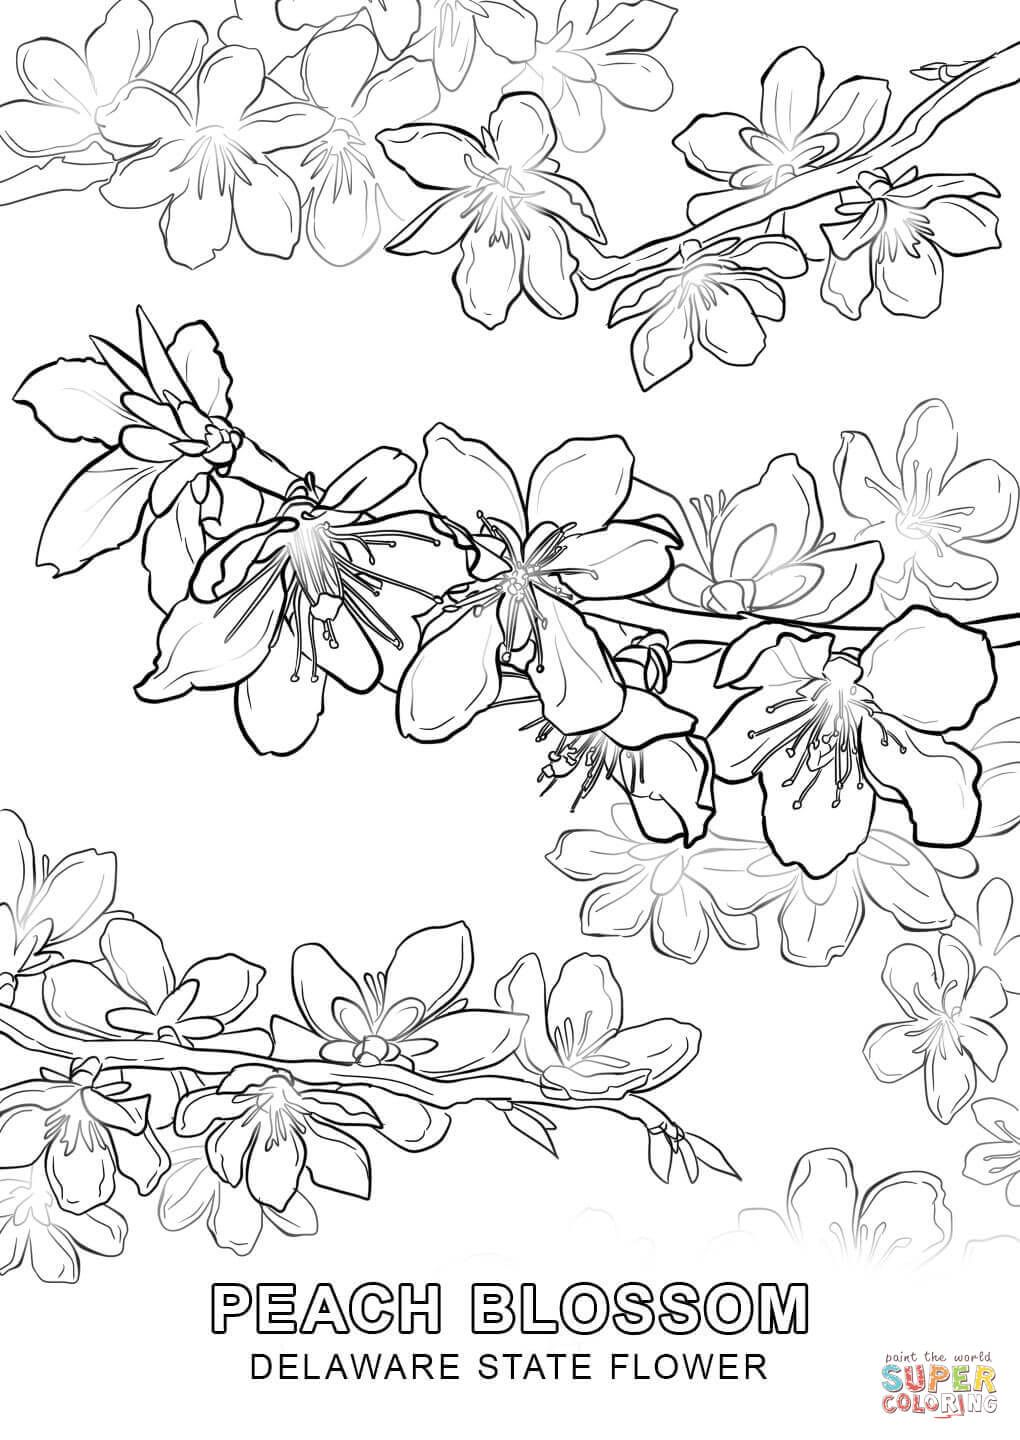 Click The Delaware State Flower Coloring Pages To View Printable